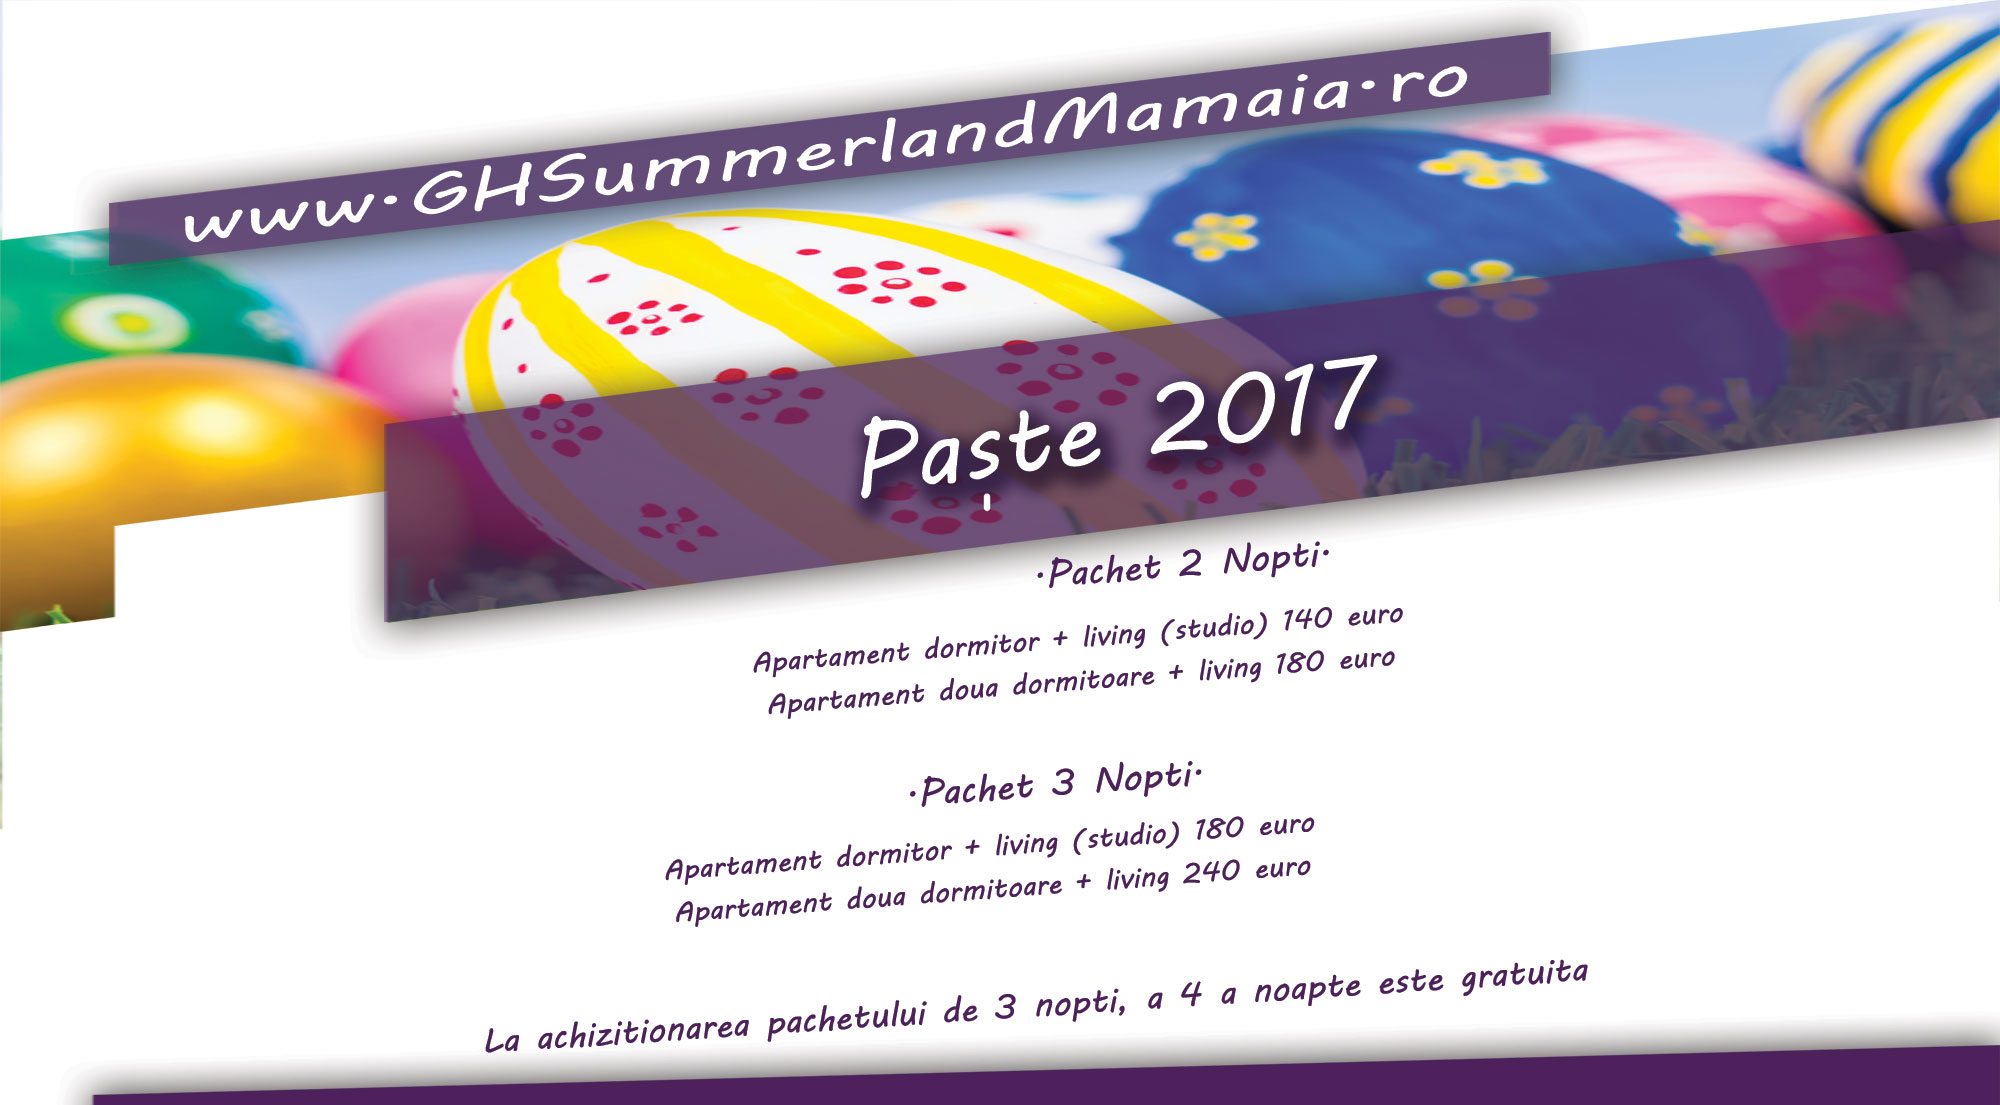 Oferta Paste 2017 Summerland Mamaia